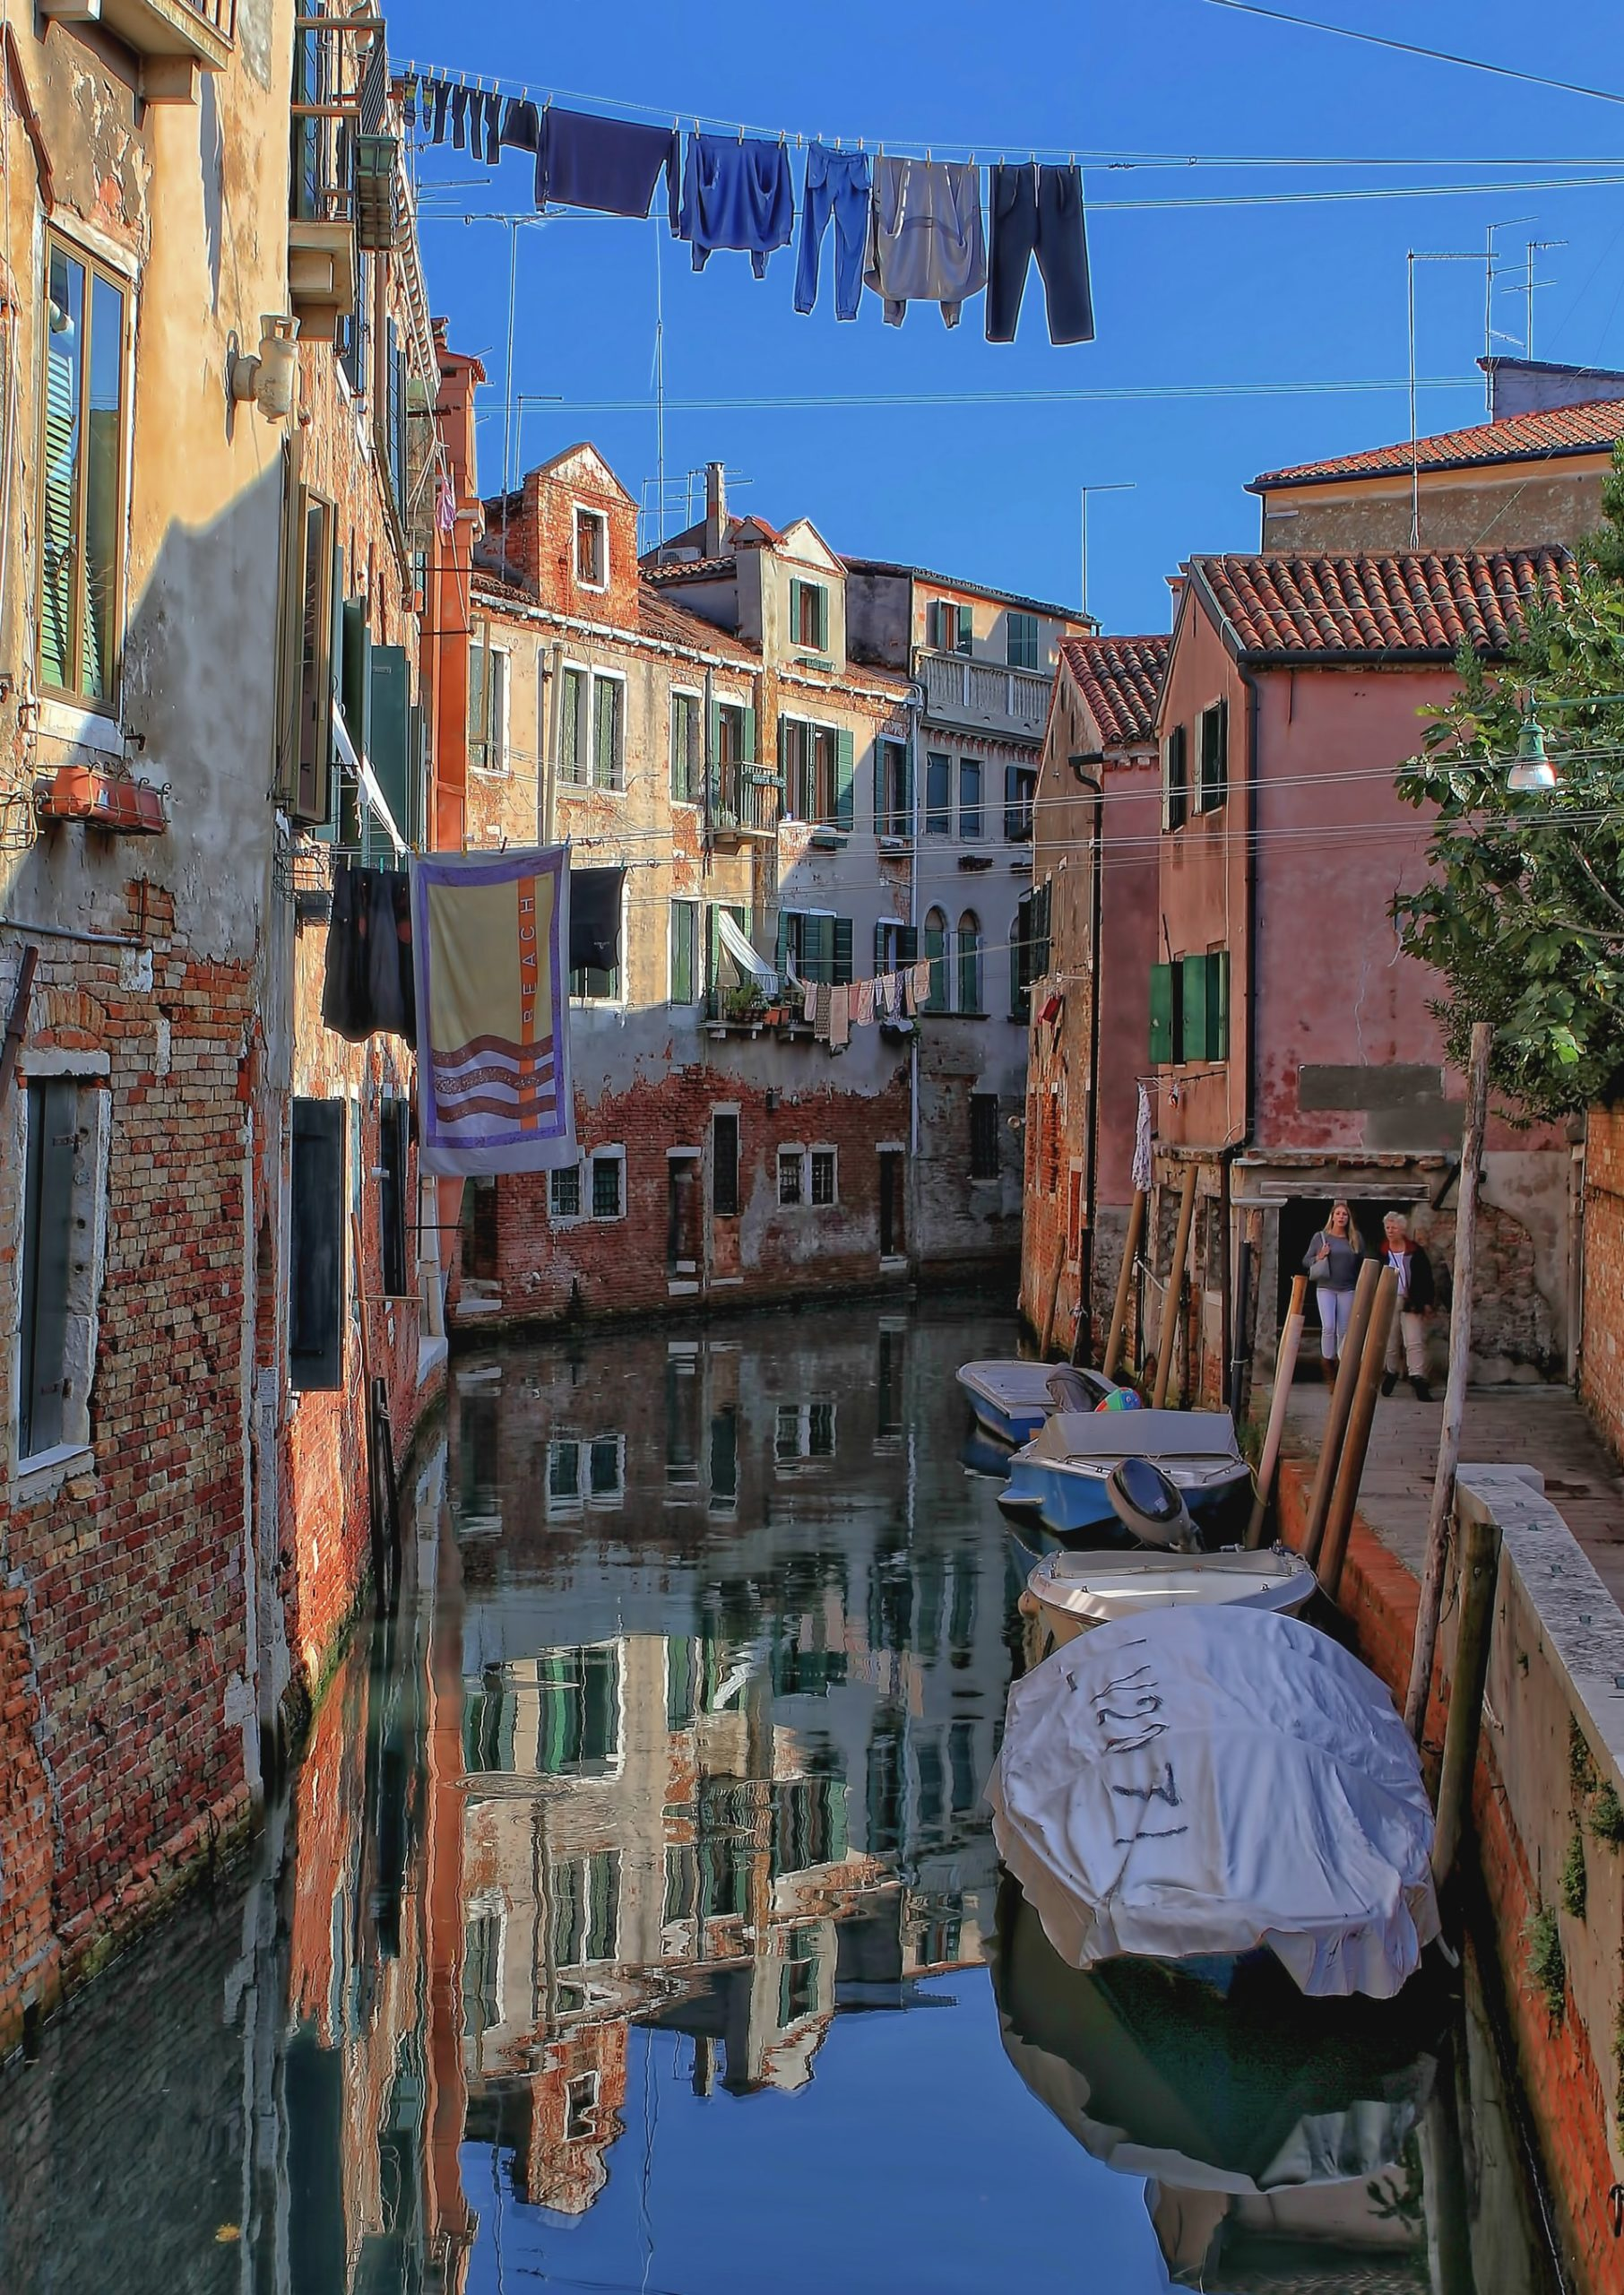 image of a canal surrounded by colourful buildings, how to write setting